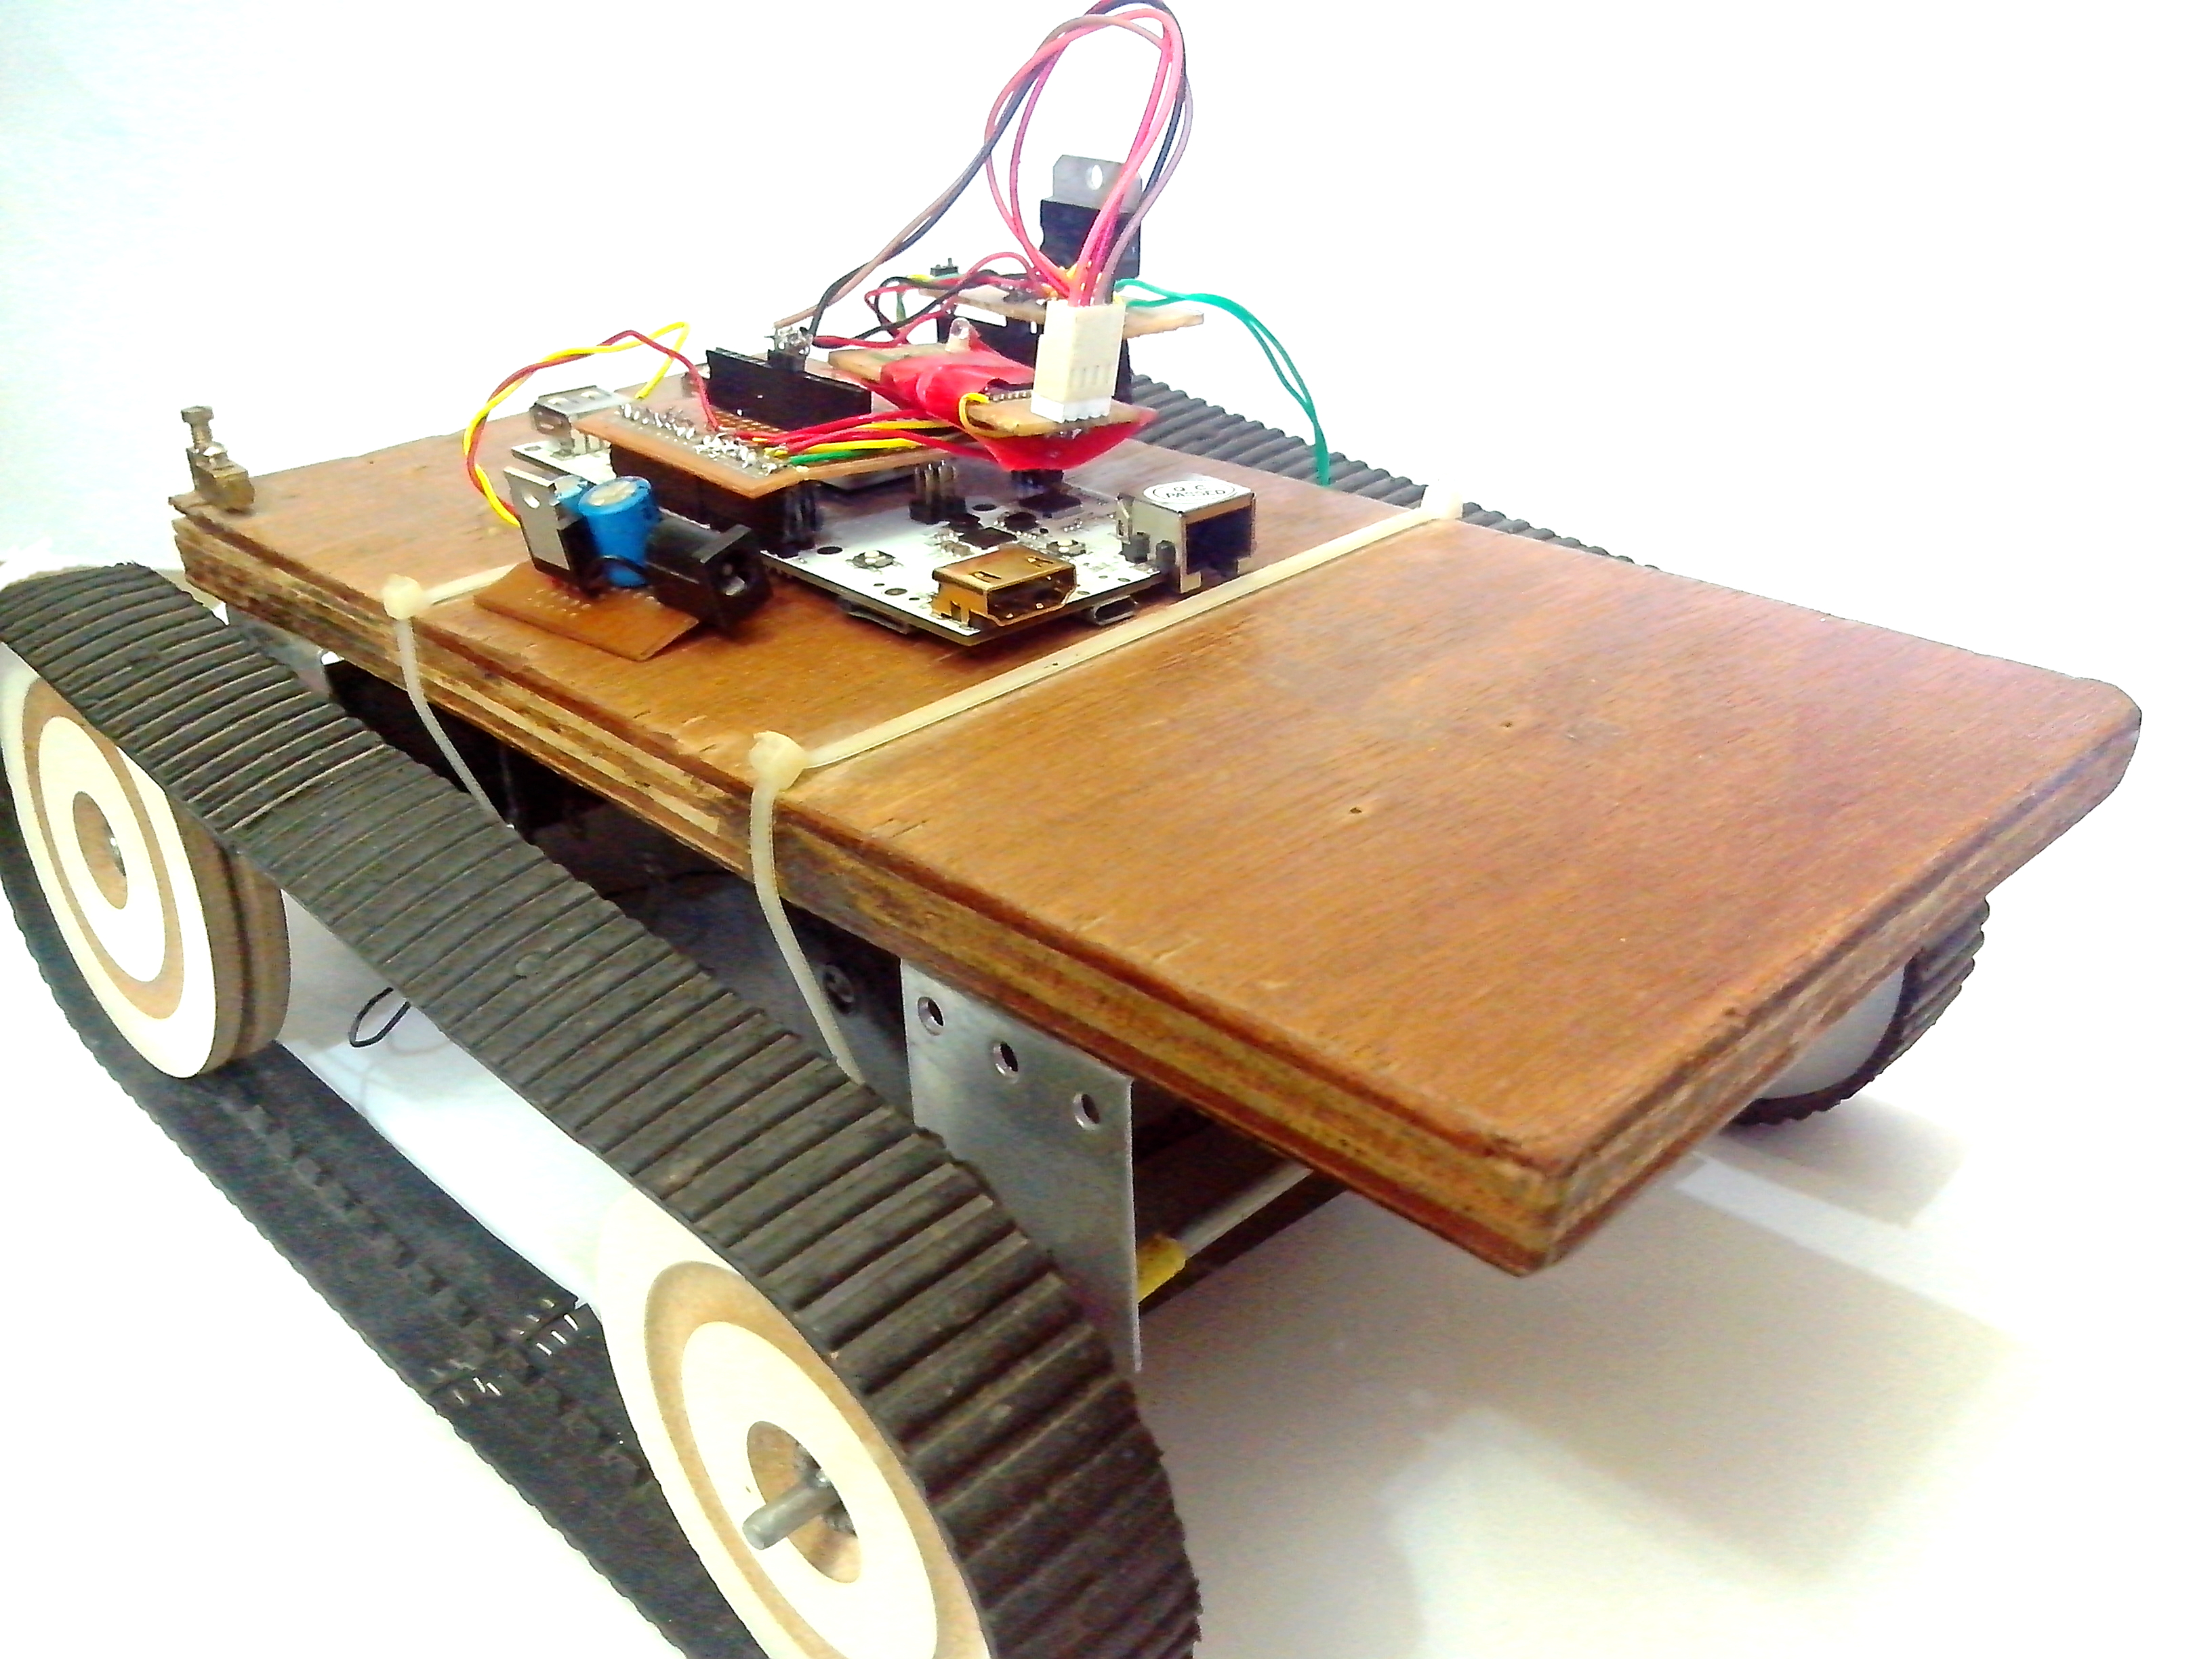 Picture of PCDUINO Robot